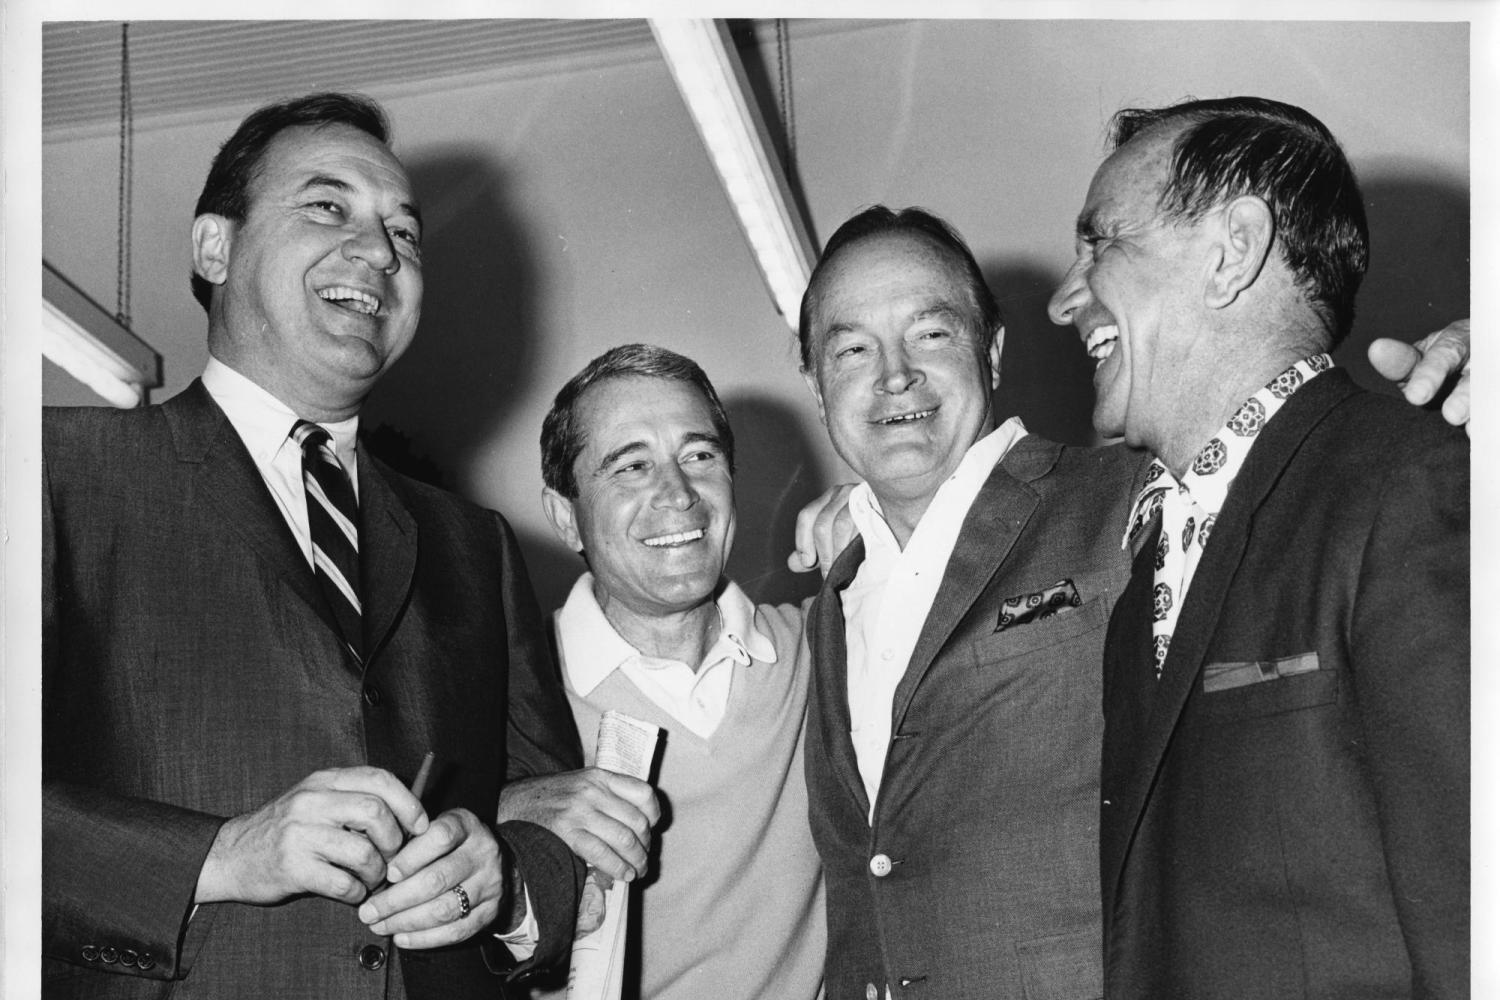 Perry Como and friends